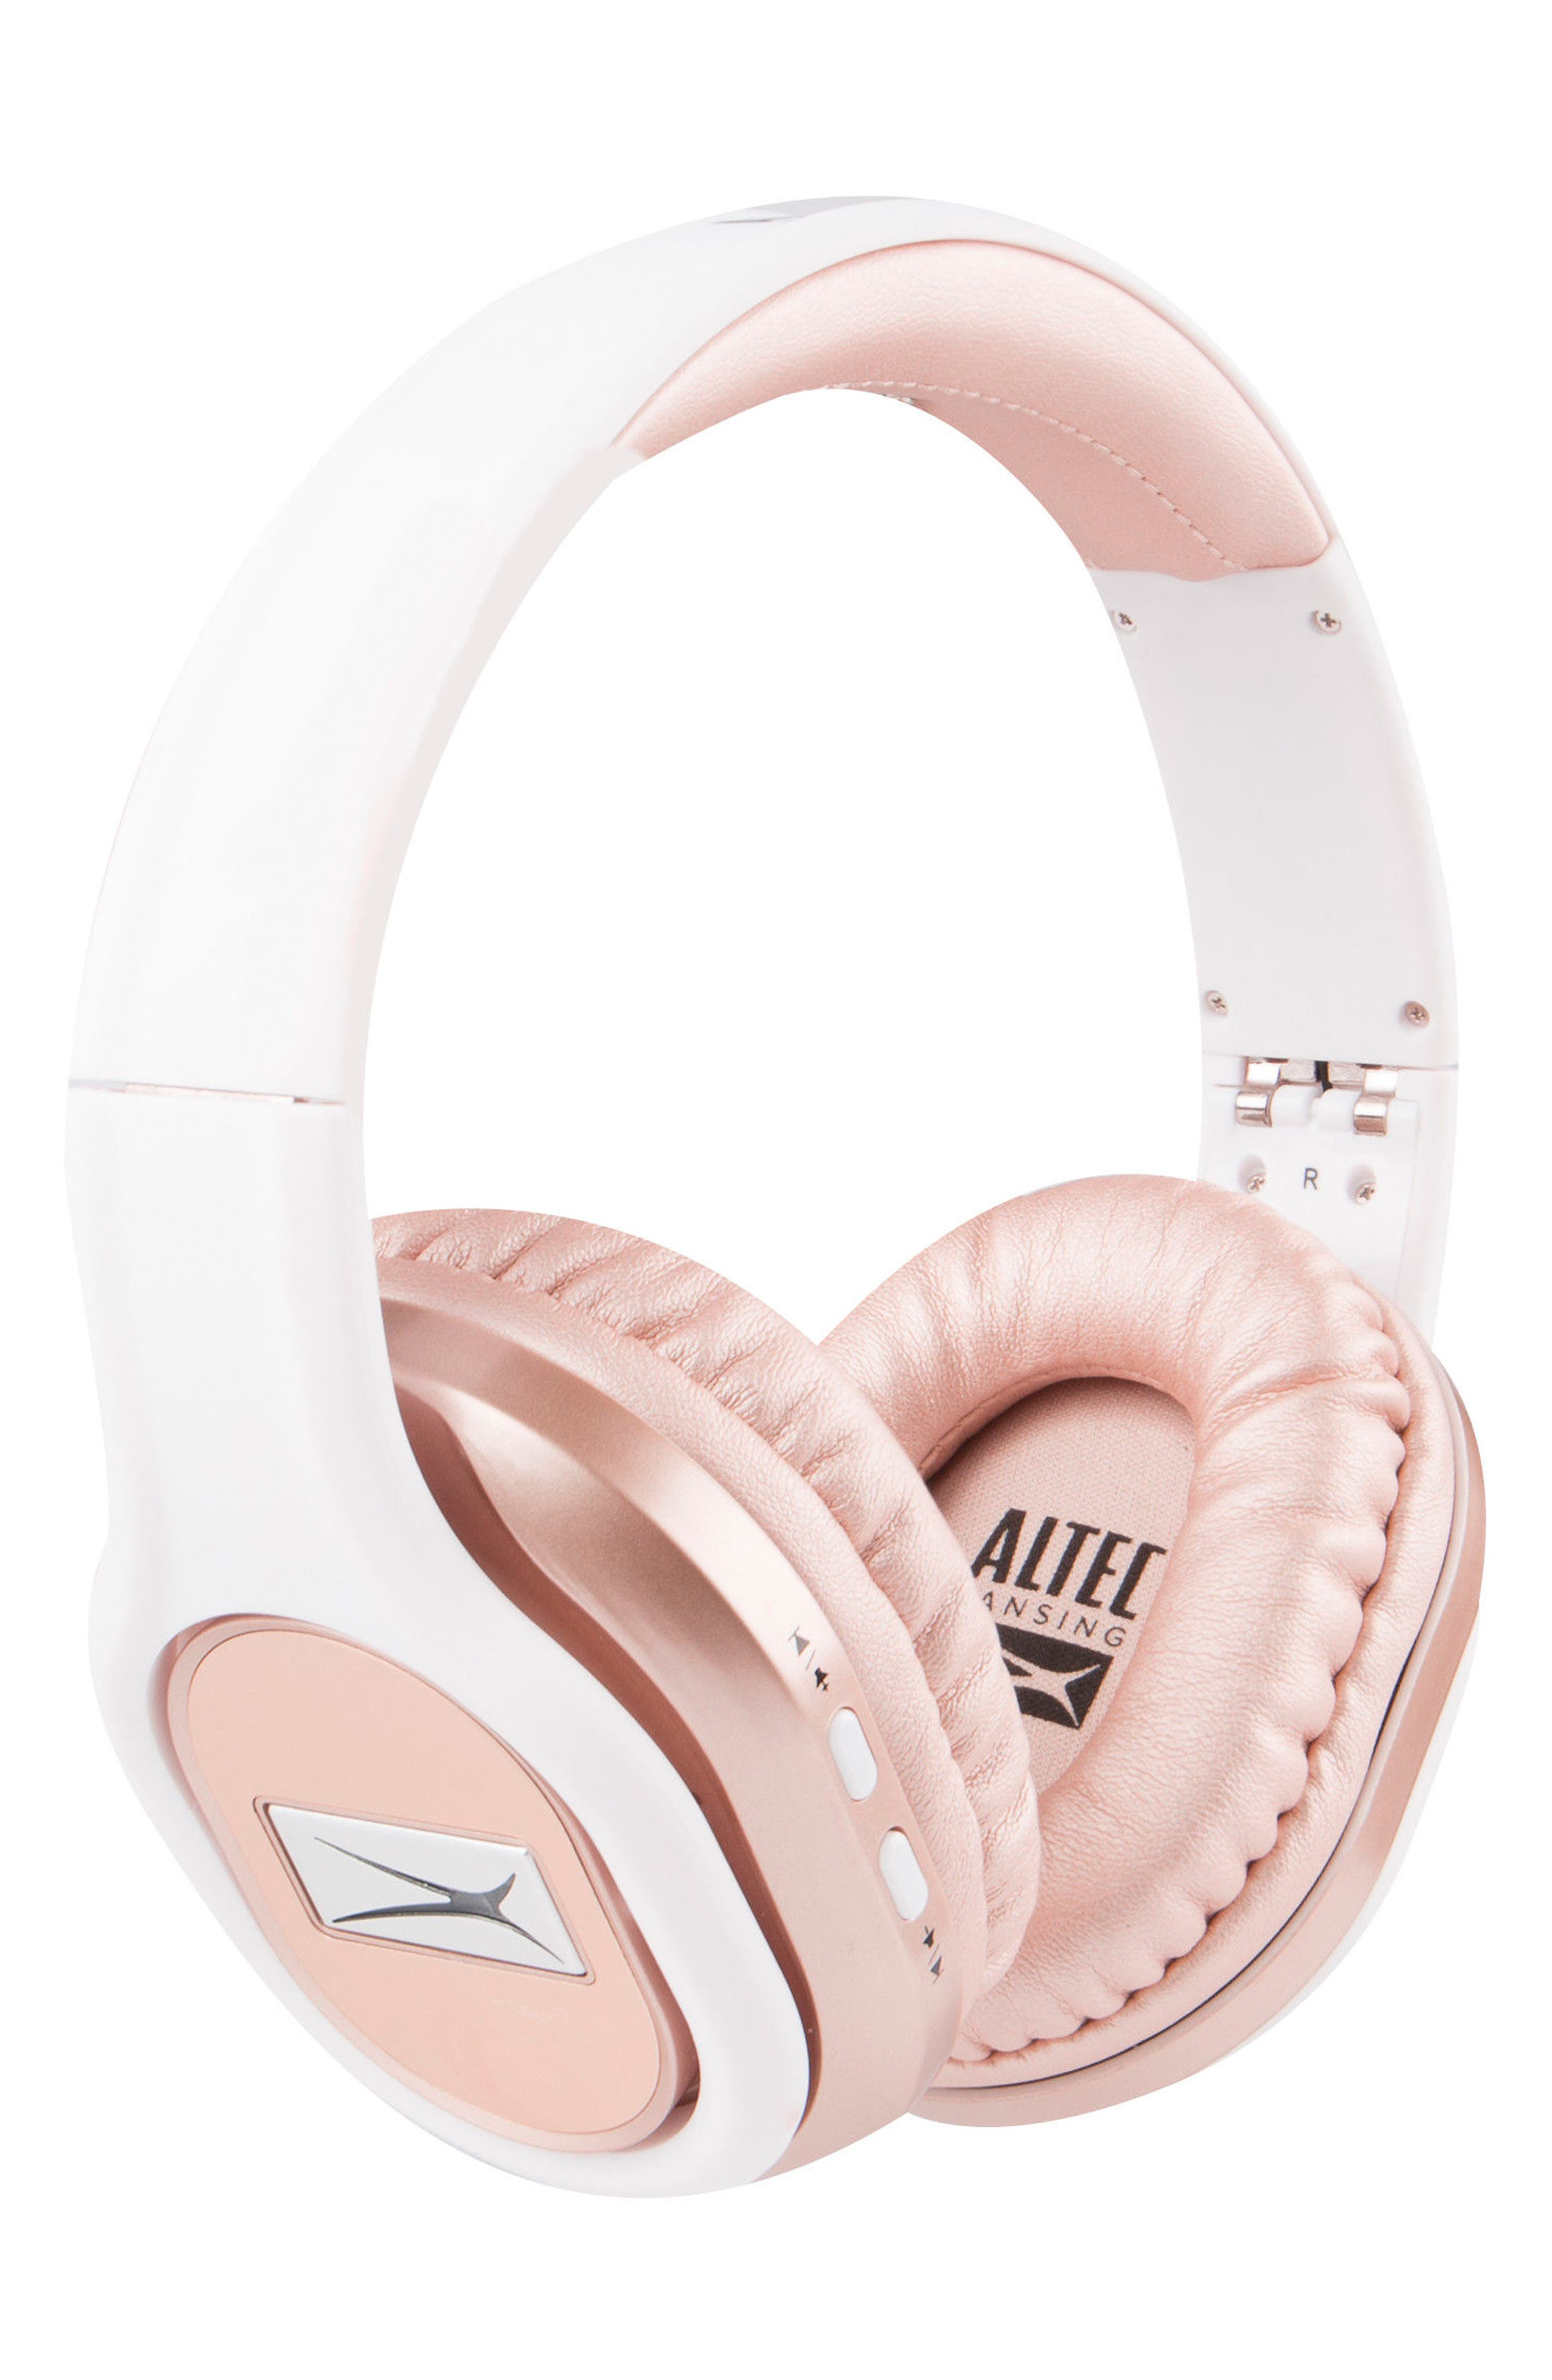 Evolution 2 Wireless Headphones,                             Main thumbnail 1, color,                             Rose Gold